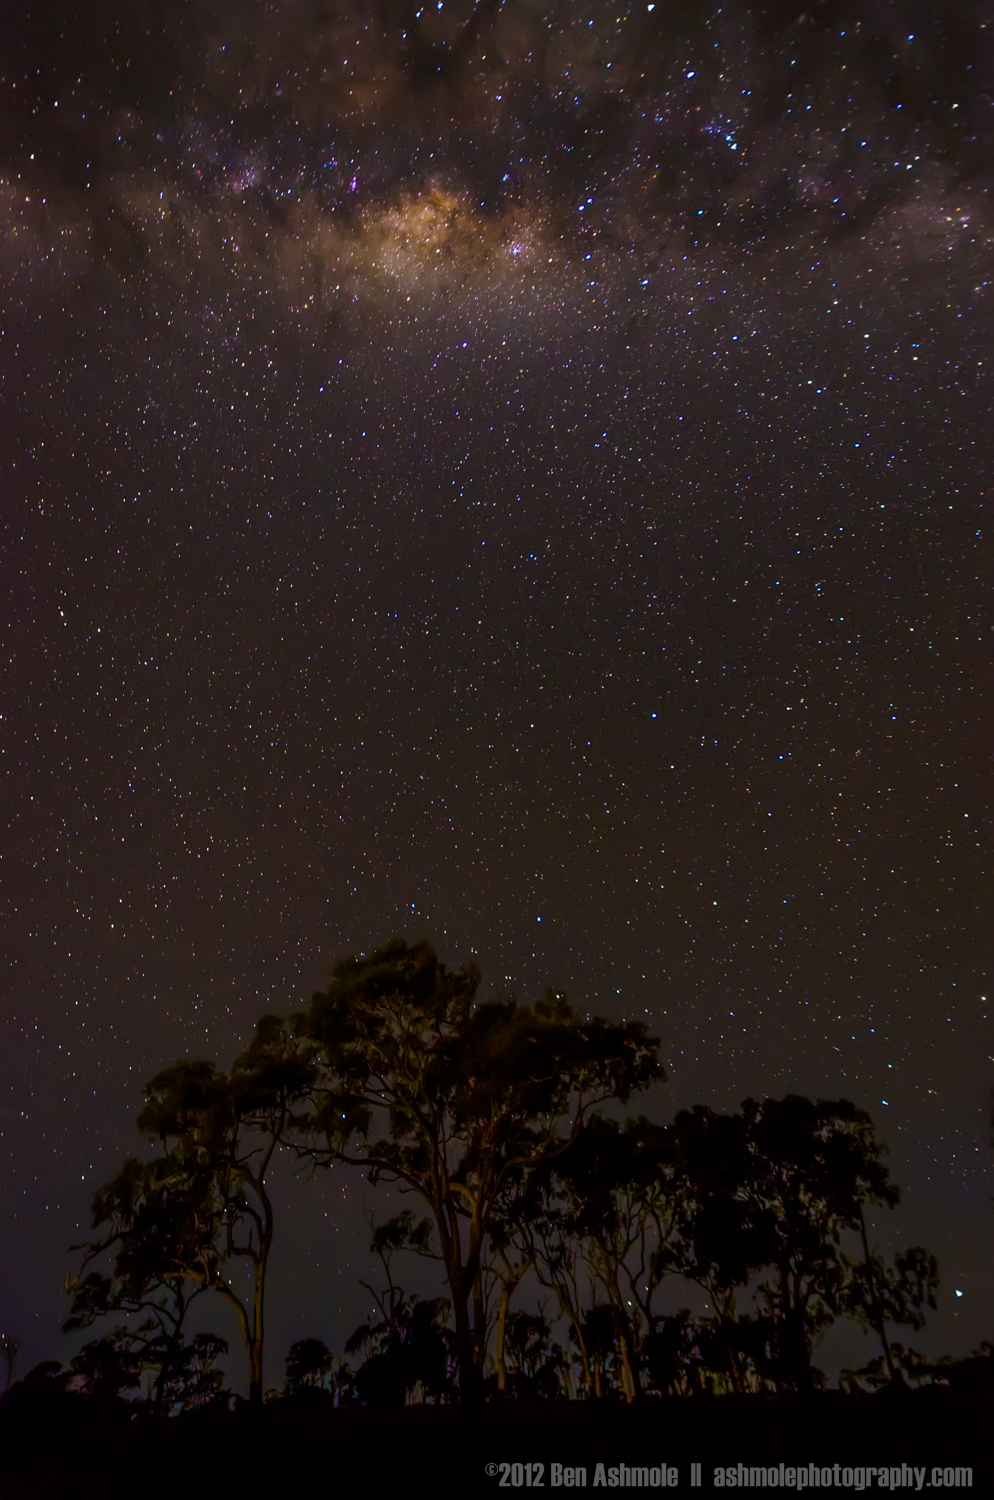 It's Raining Stars, Elliot Heads, Queensland, Australia, Ben Ash